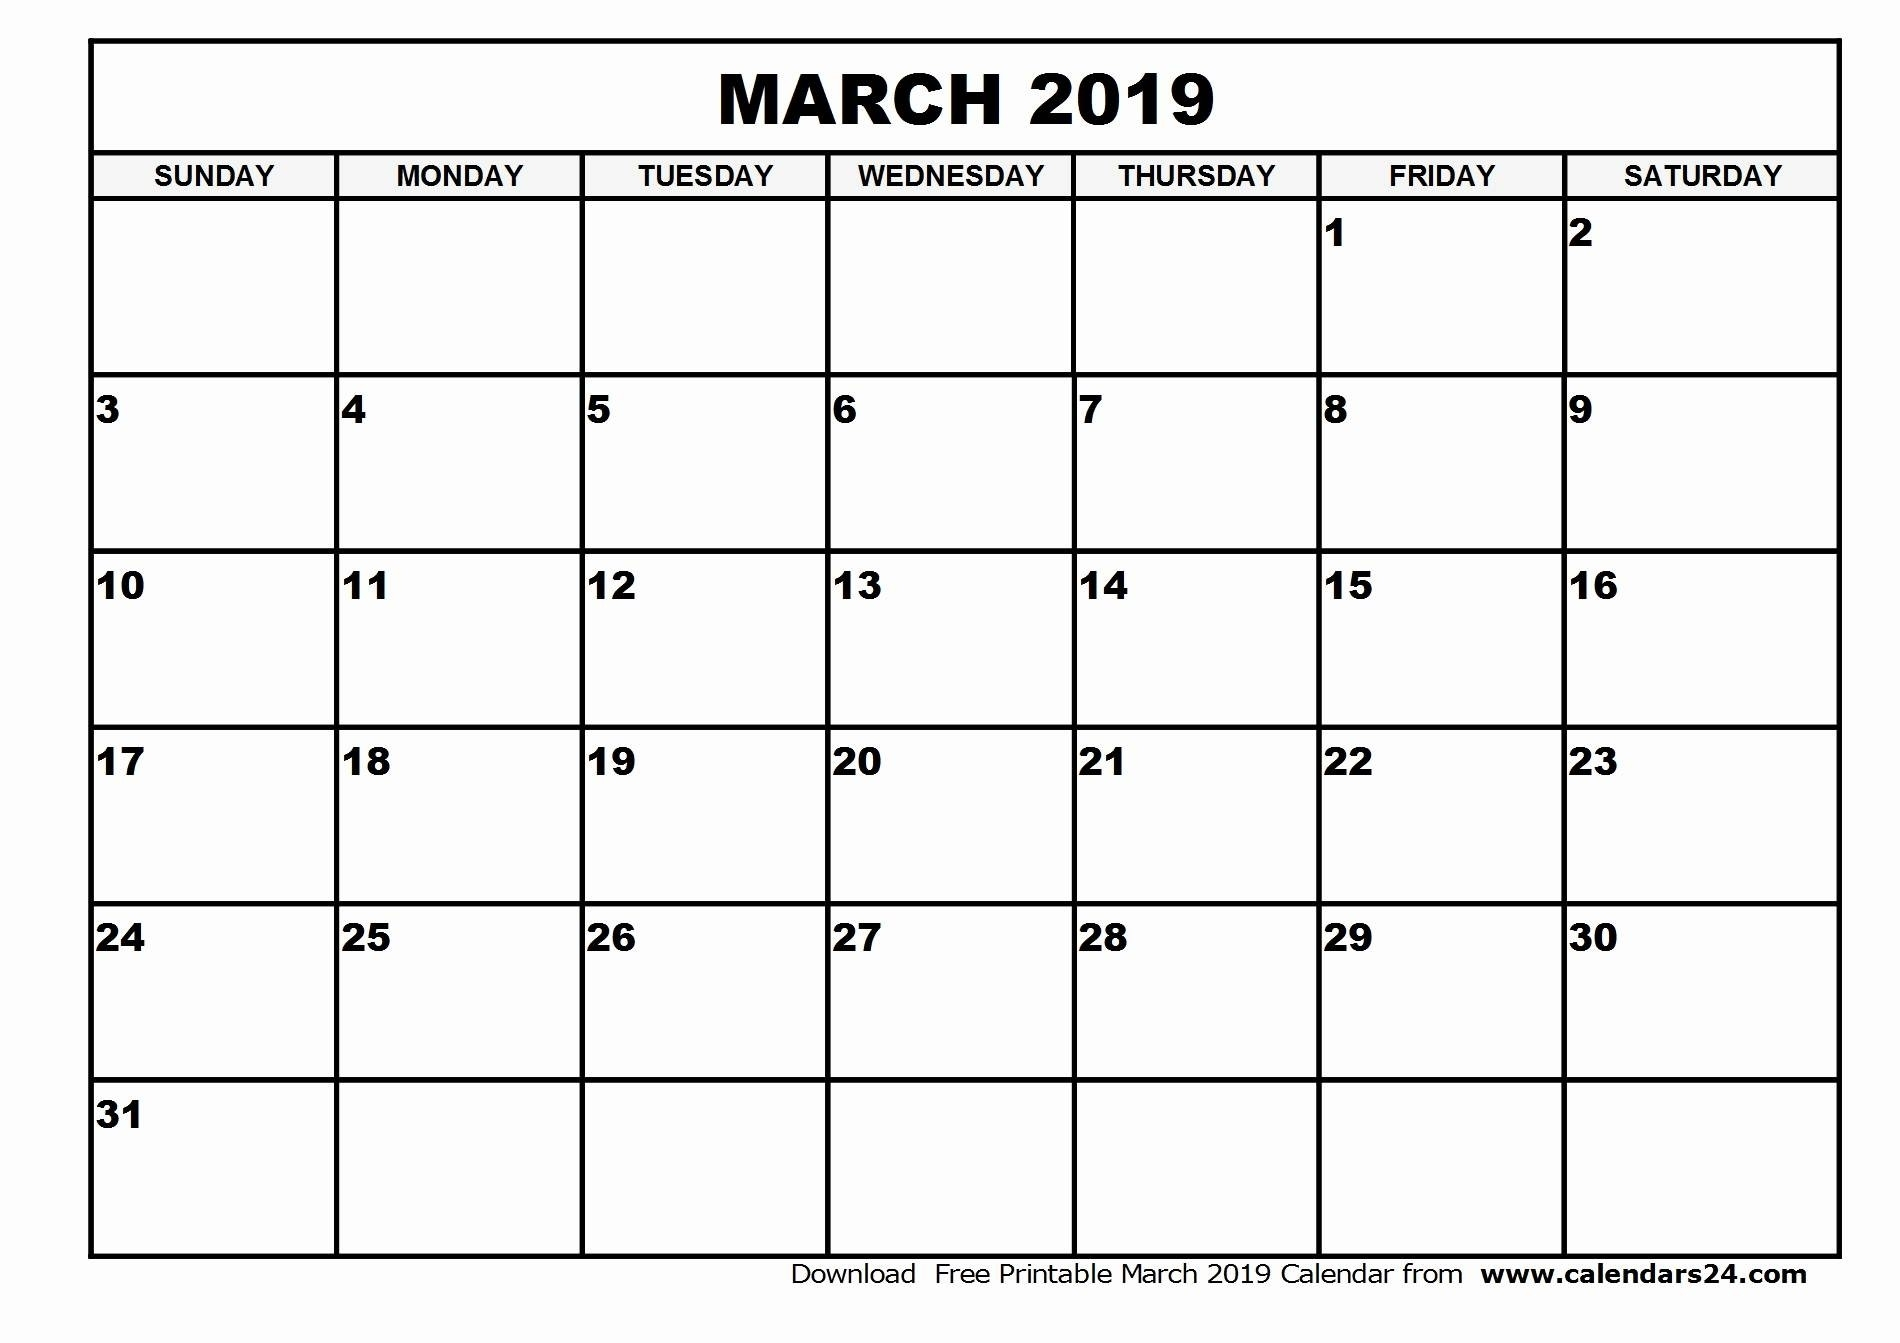 Blank March 2019 Calendar Templates Printable Download - July 2019 intended for Free Printable Monthly Calendar Template